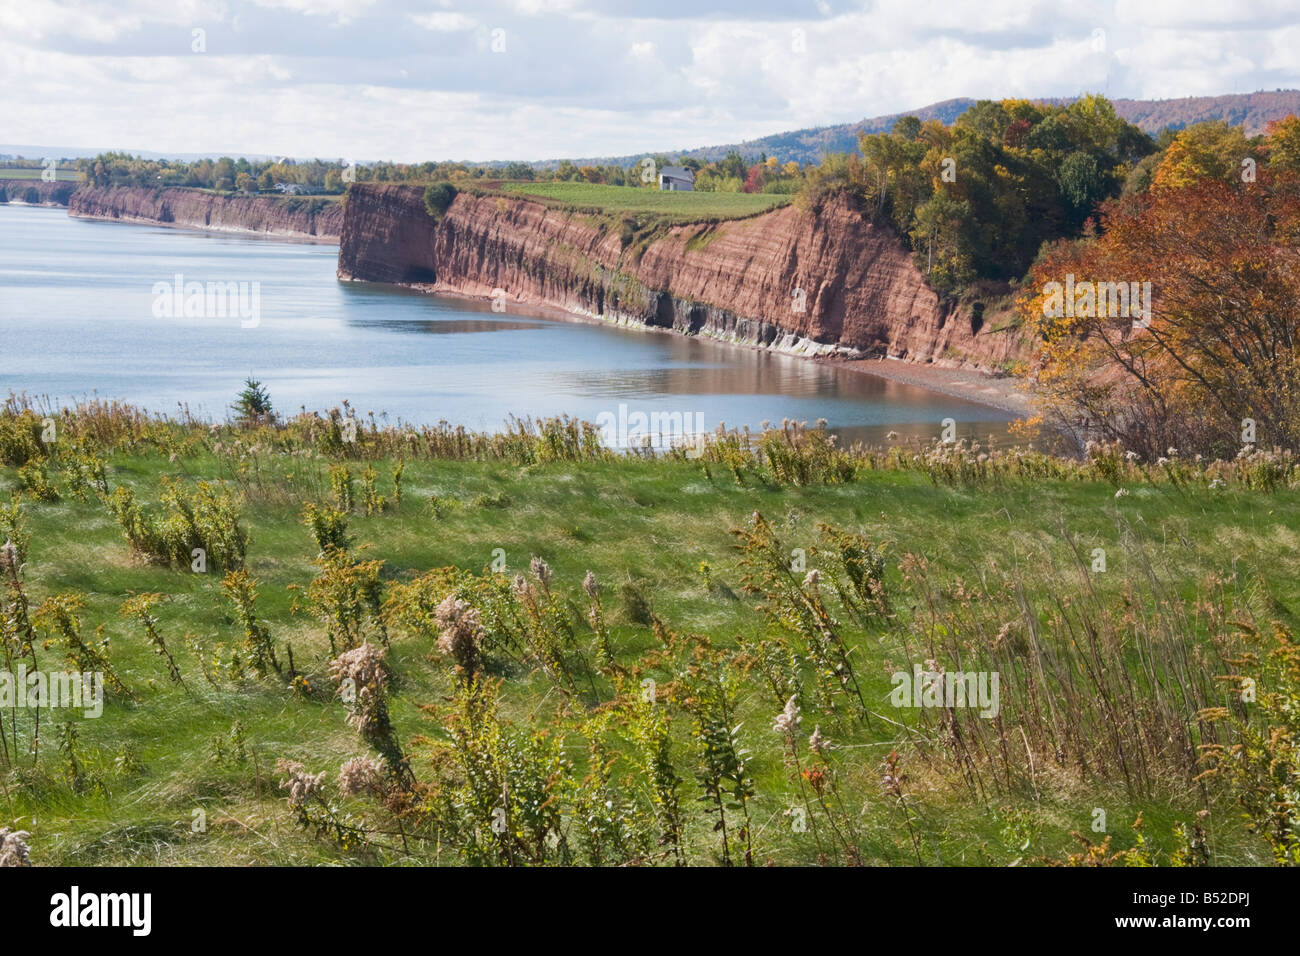 View of Bay of Fundy at high tide - Blomidon Provincial Park, Nova Scotia, Canada Stock Photo